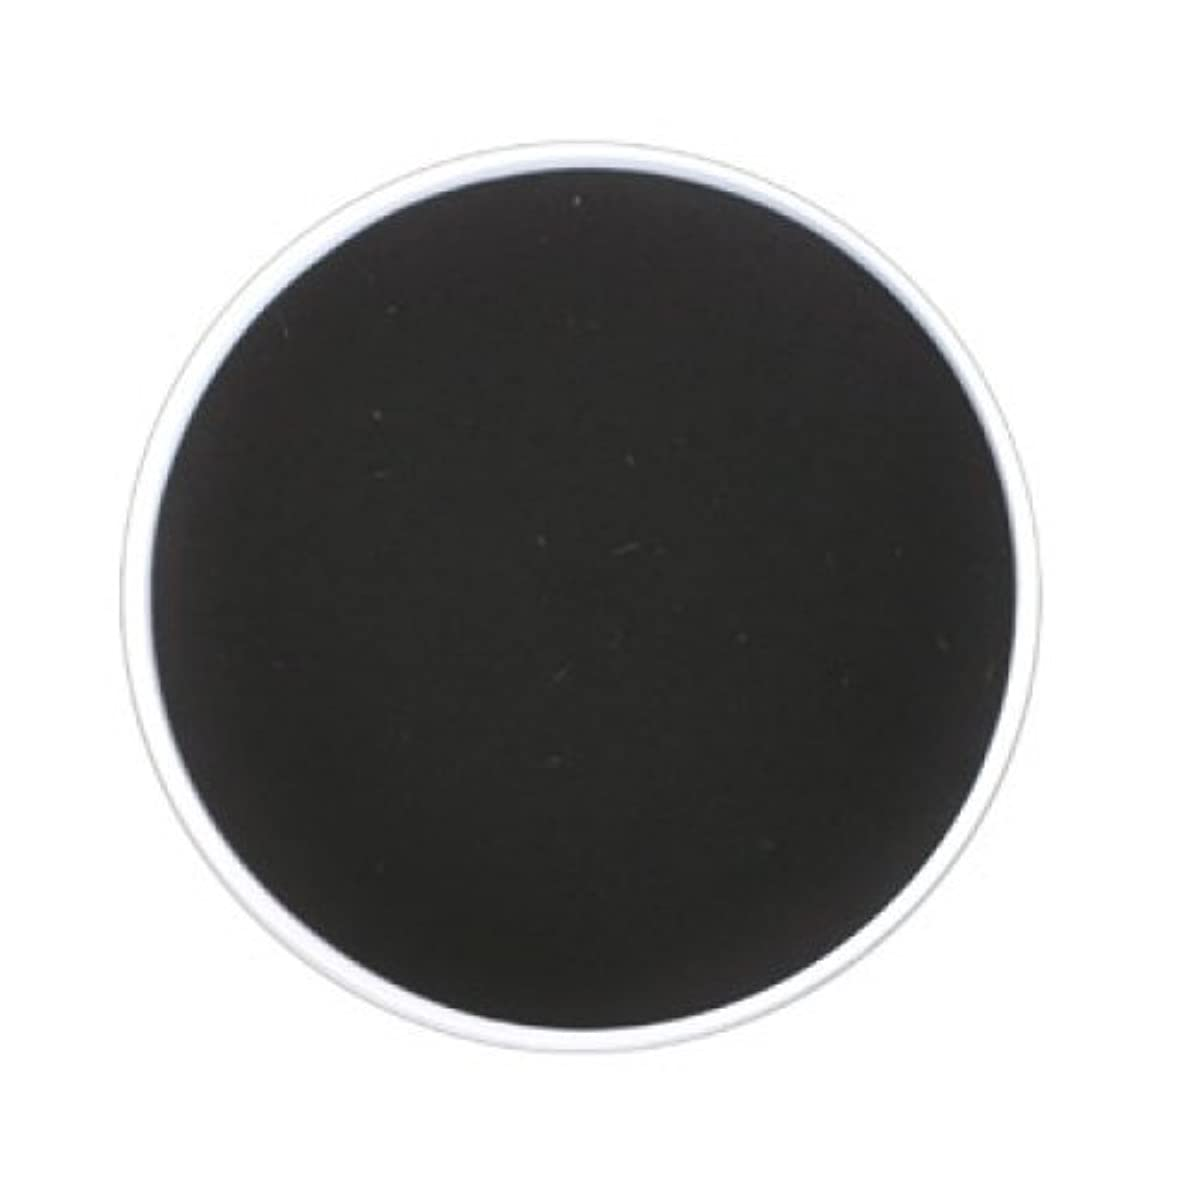 mehron Color Cups Face and Body Paint - Black (並行輸入品)